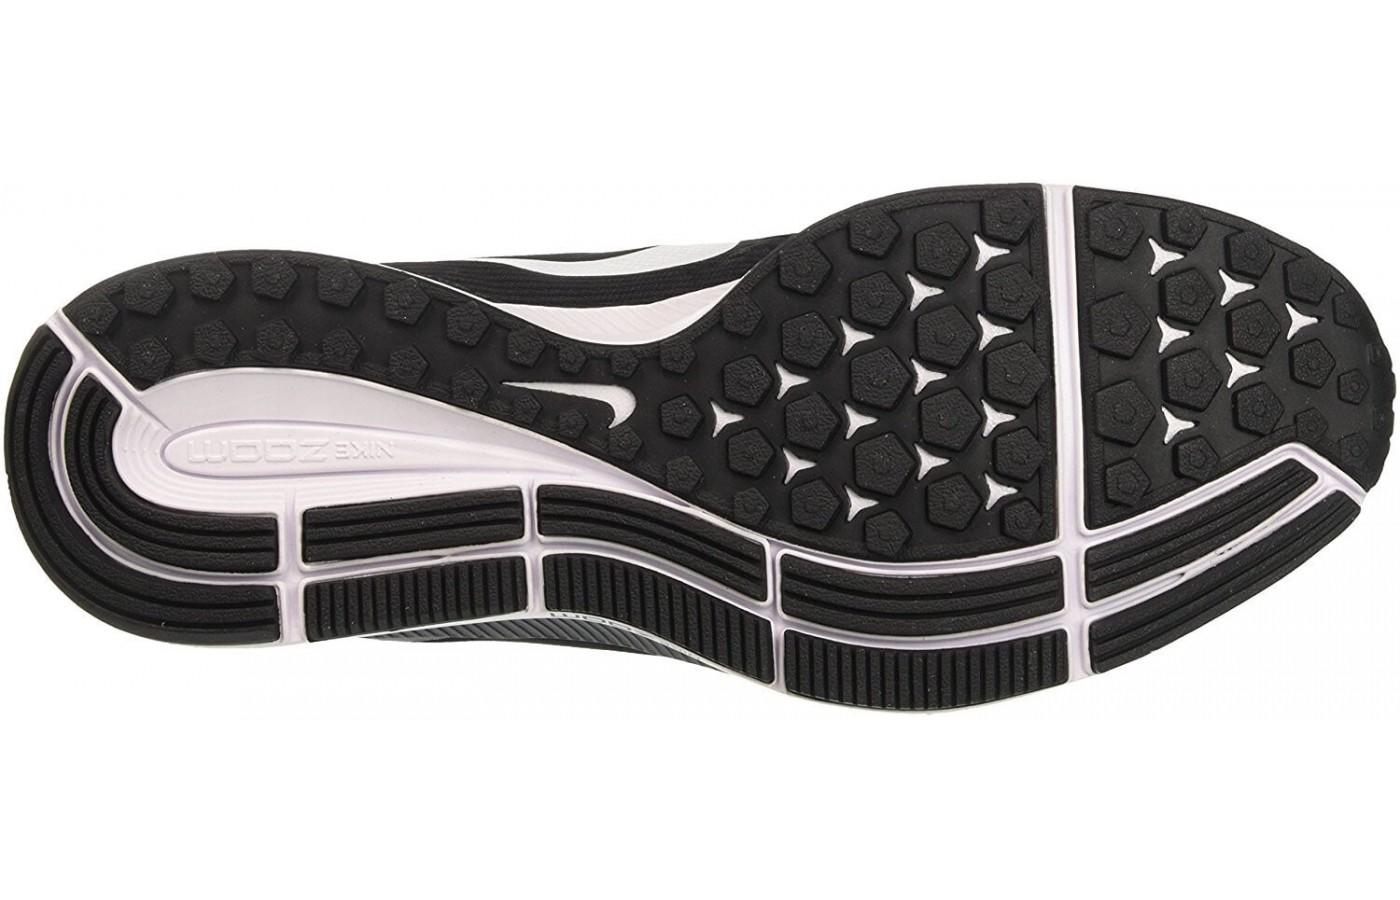 the outsole of the Nike Air Zoom Pegasus 34 features excellent tread on the medial and numerous flex grooves